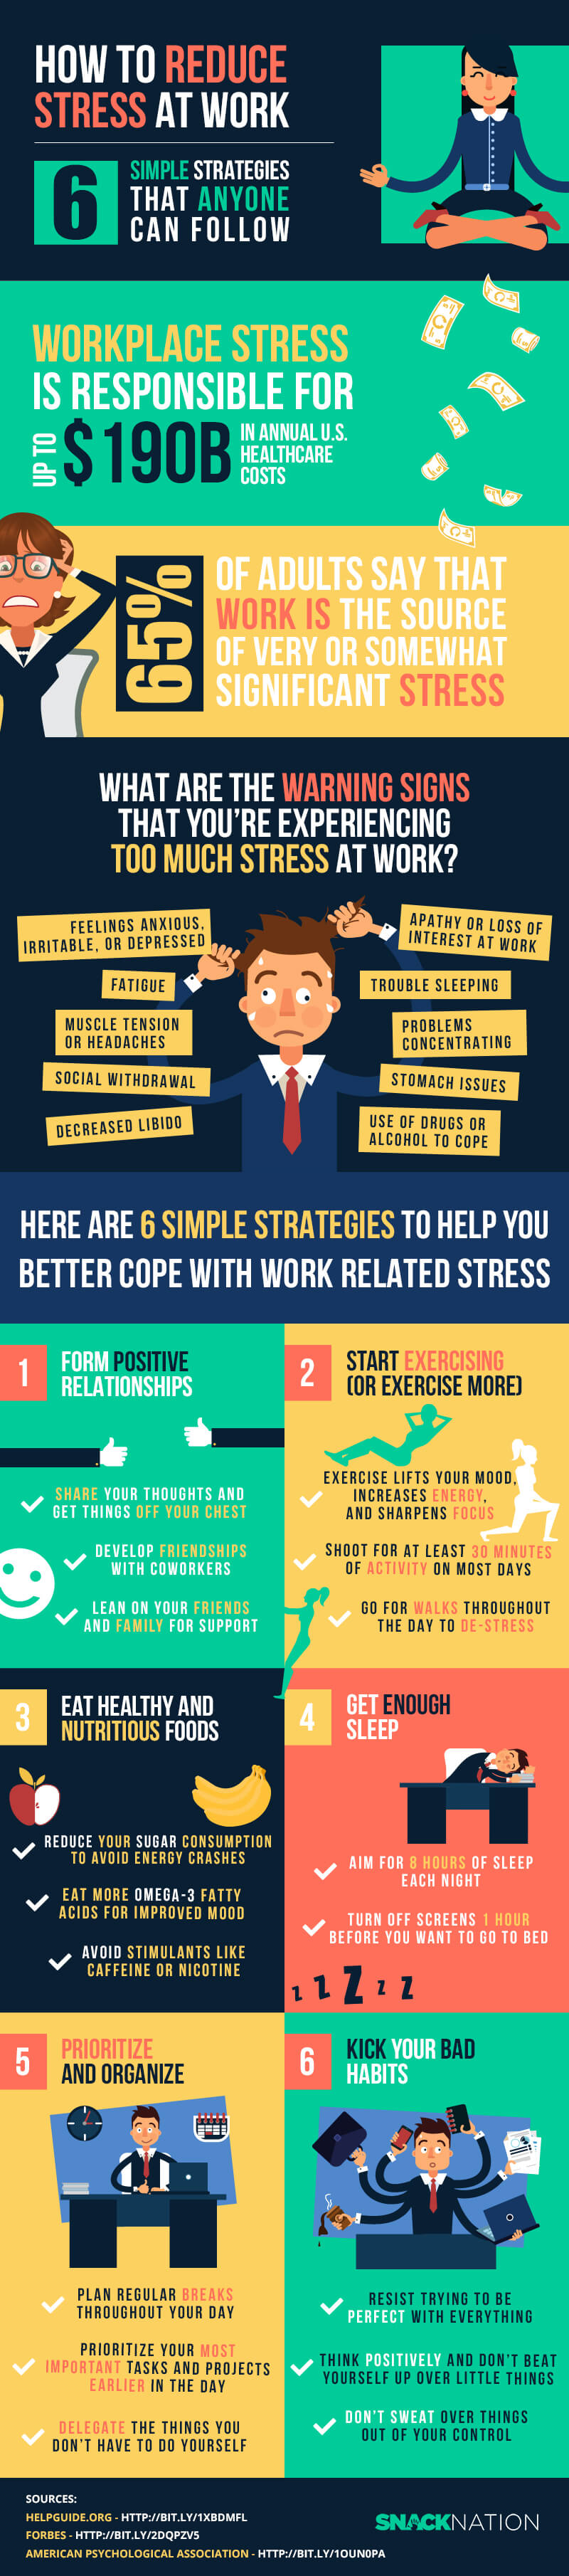 snacknation how to deal with stress